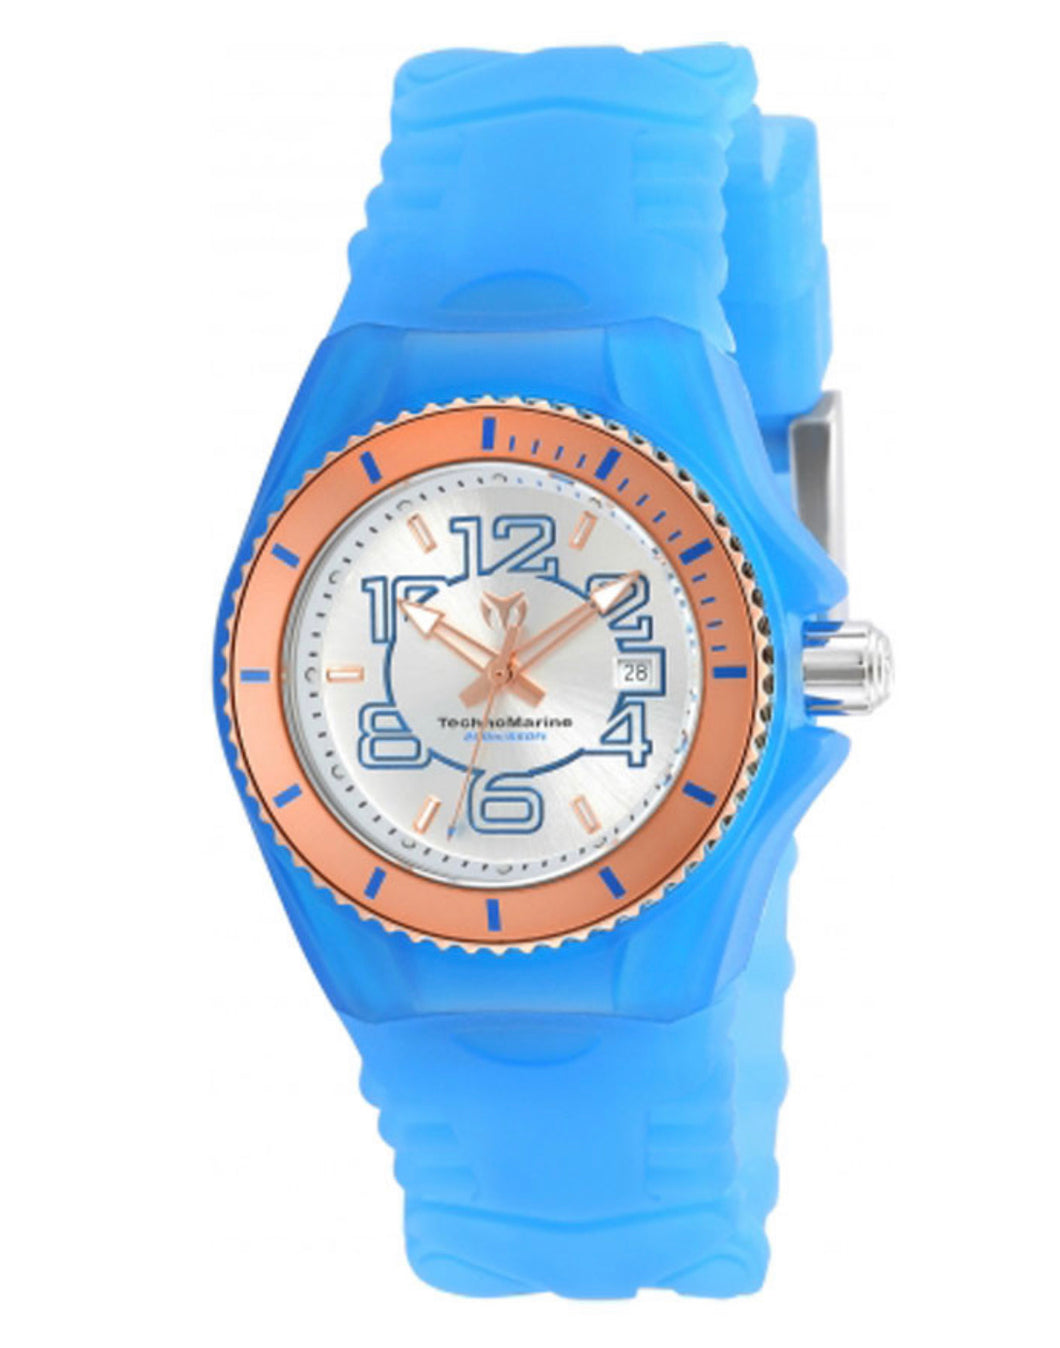 TECHNOMARINE CRUISE JELLYFISH 34MM WATCH WITH ROSE GOLD + SILVER DIAL 585 QUARTZ - MODEL TM-115135 - Boutique Watches & More